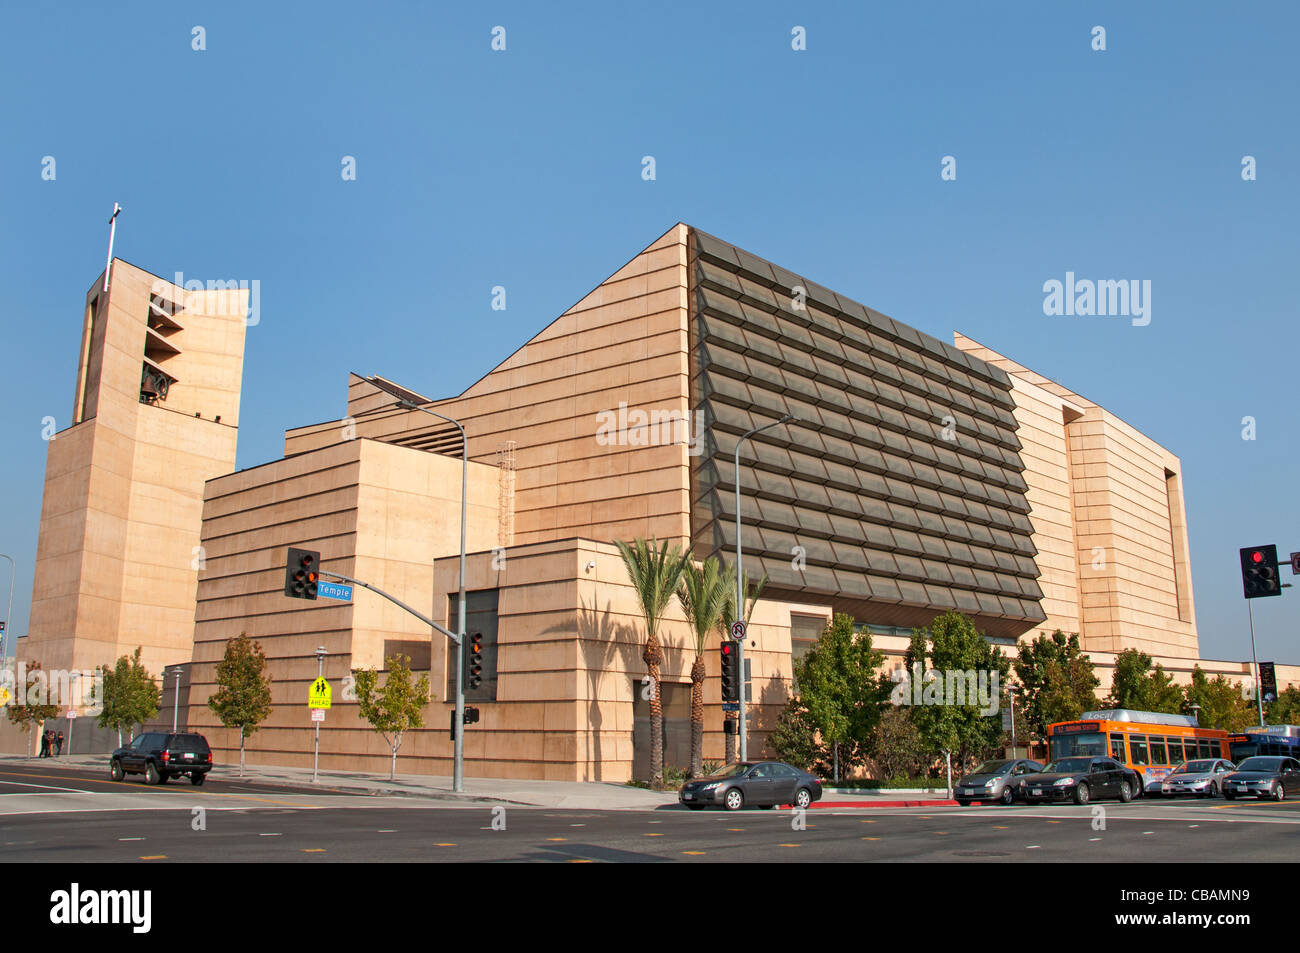 Cathedral of Our Lady of the Angles Los Angeles United States of America California American USA - Stock Image